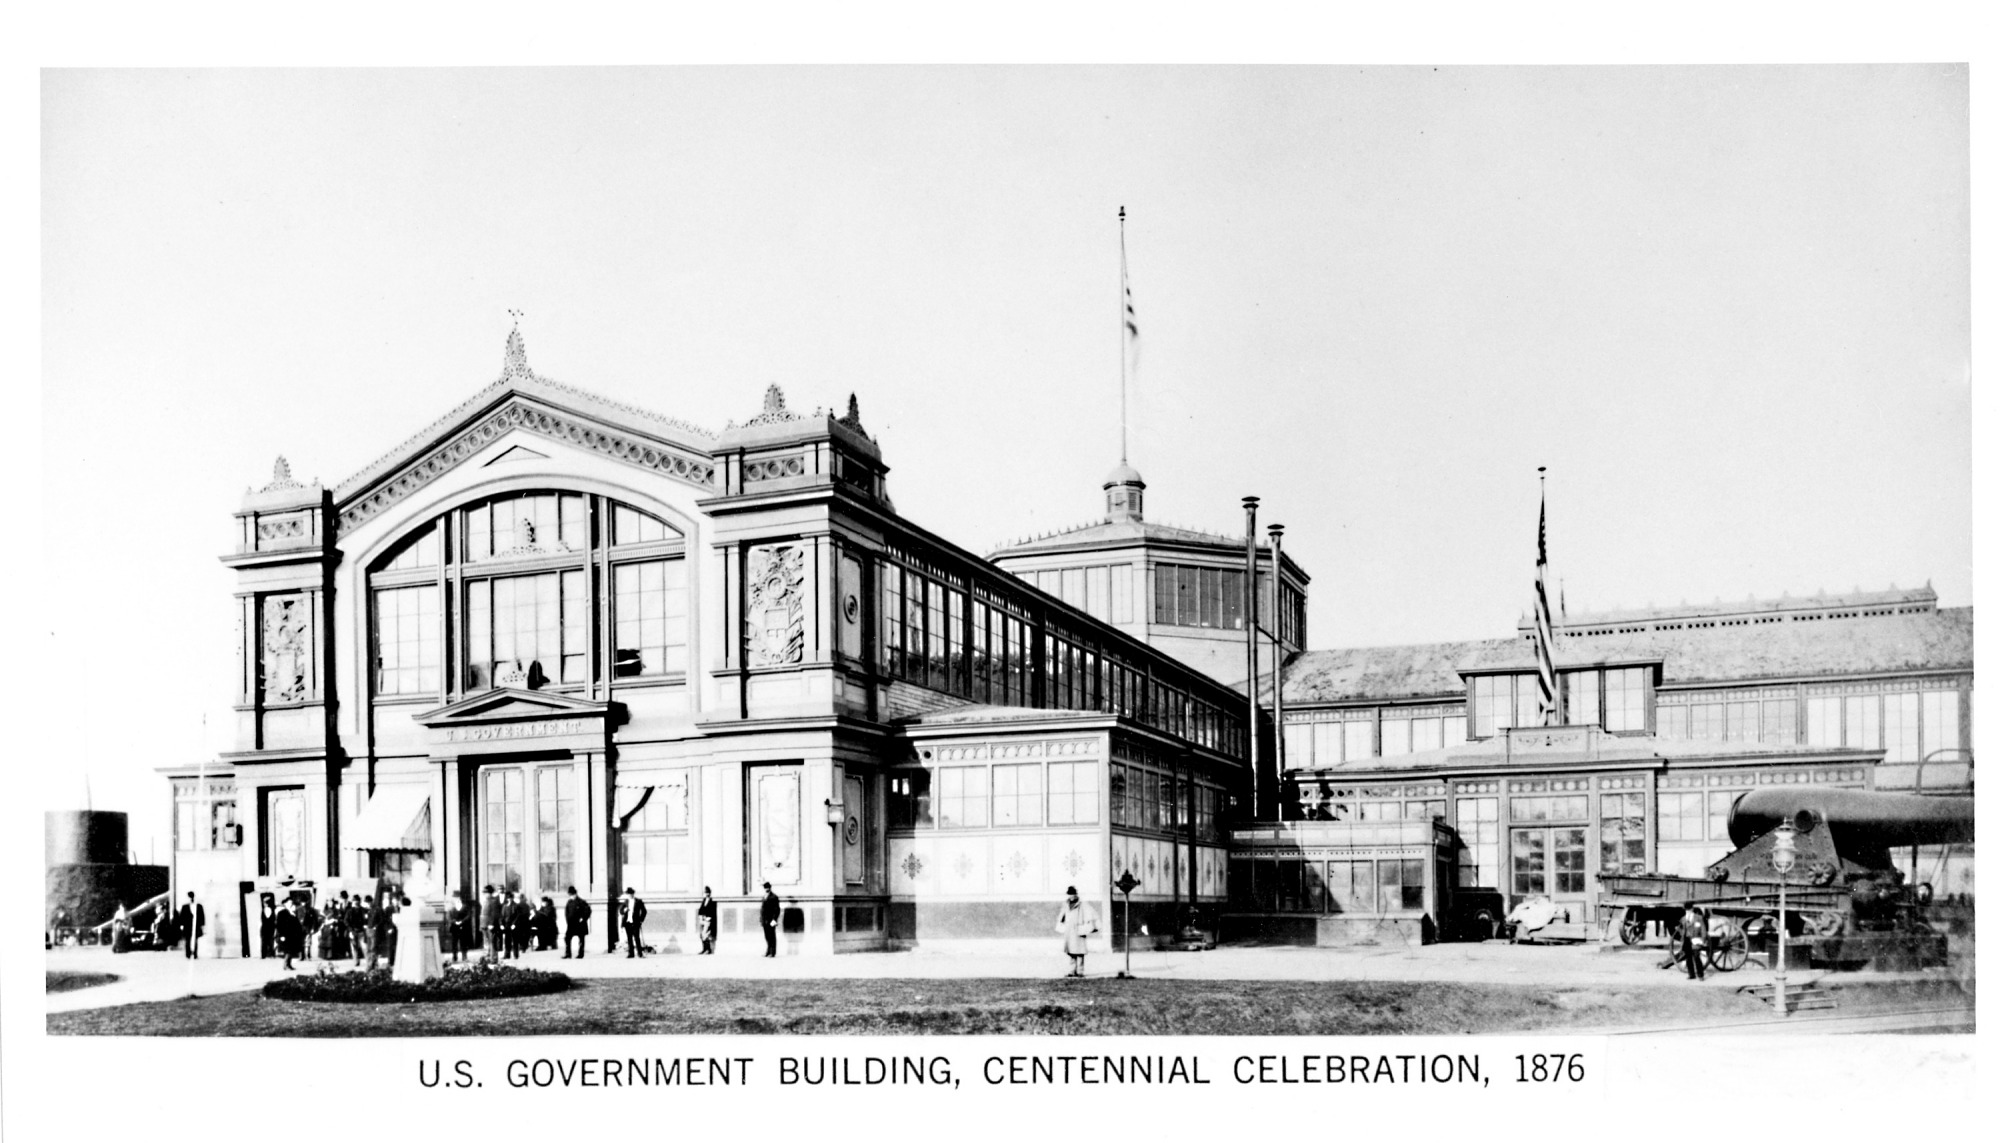 Image of the Government Building at the Centennial Exhibition in Philadelphia, 1876. Smithsonian Institution Archives, negative number 2004-10361.